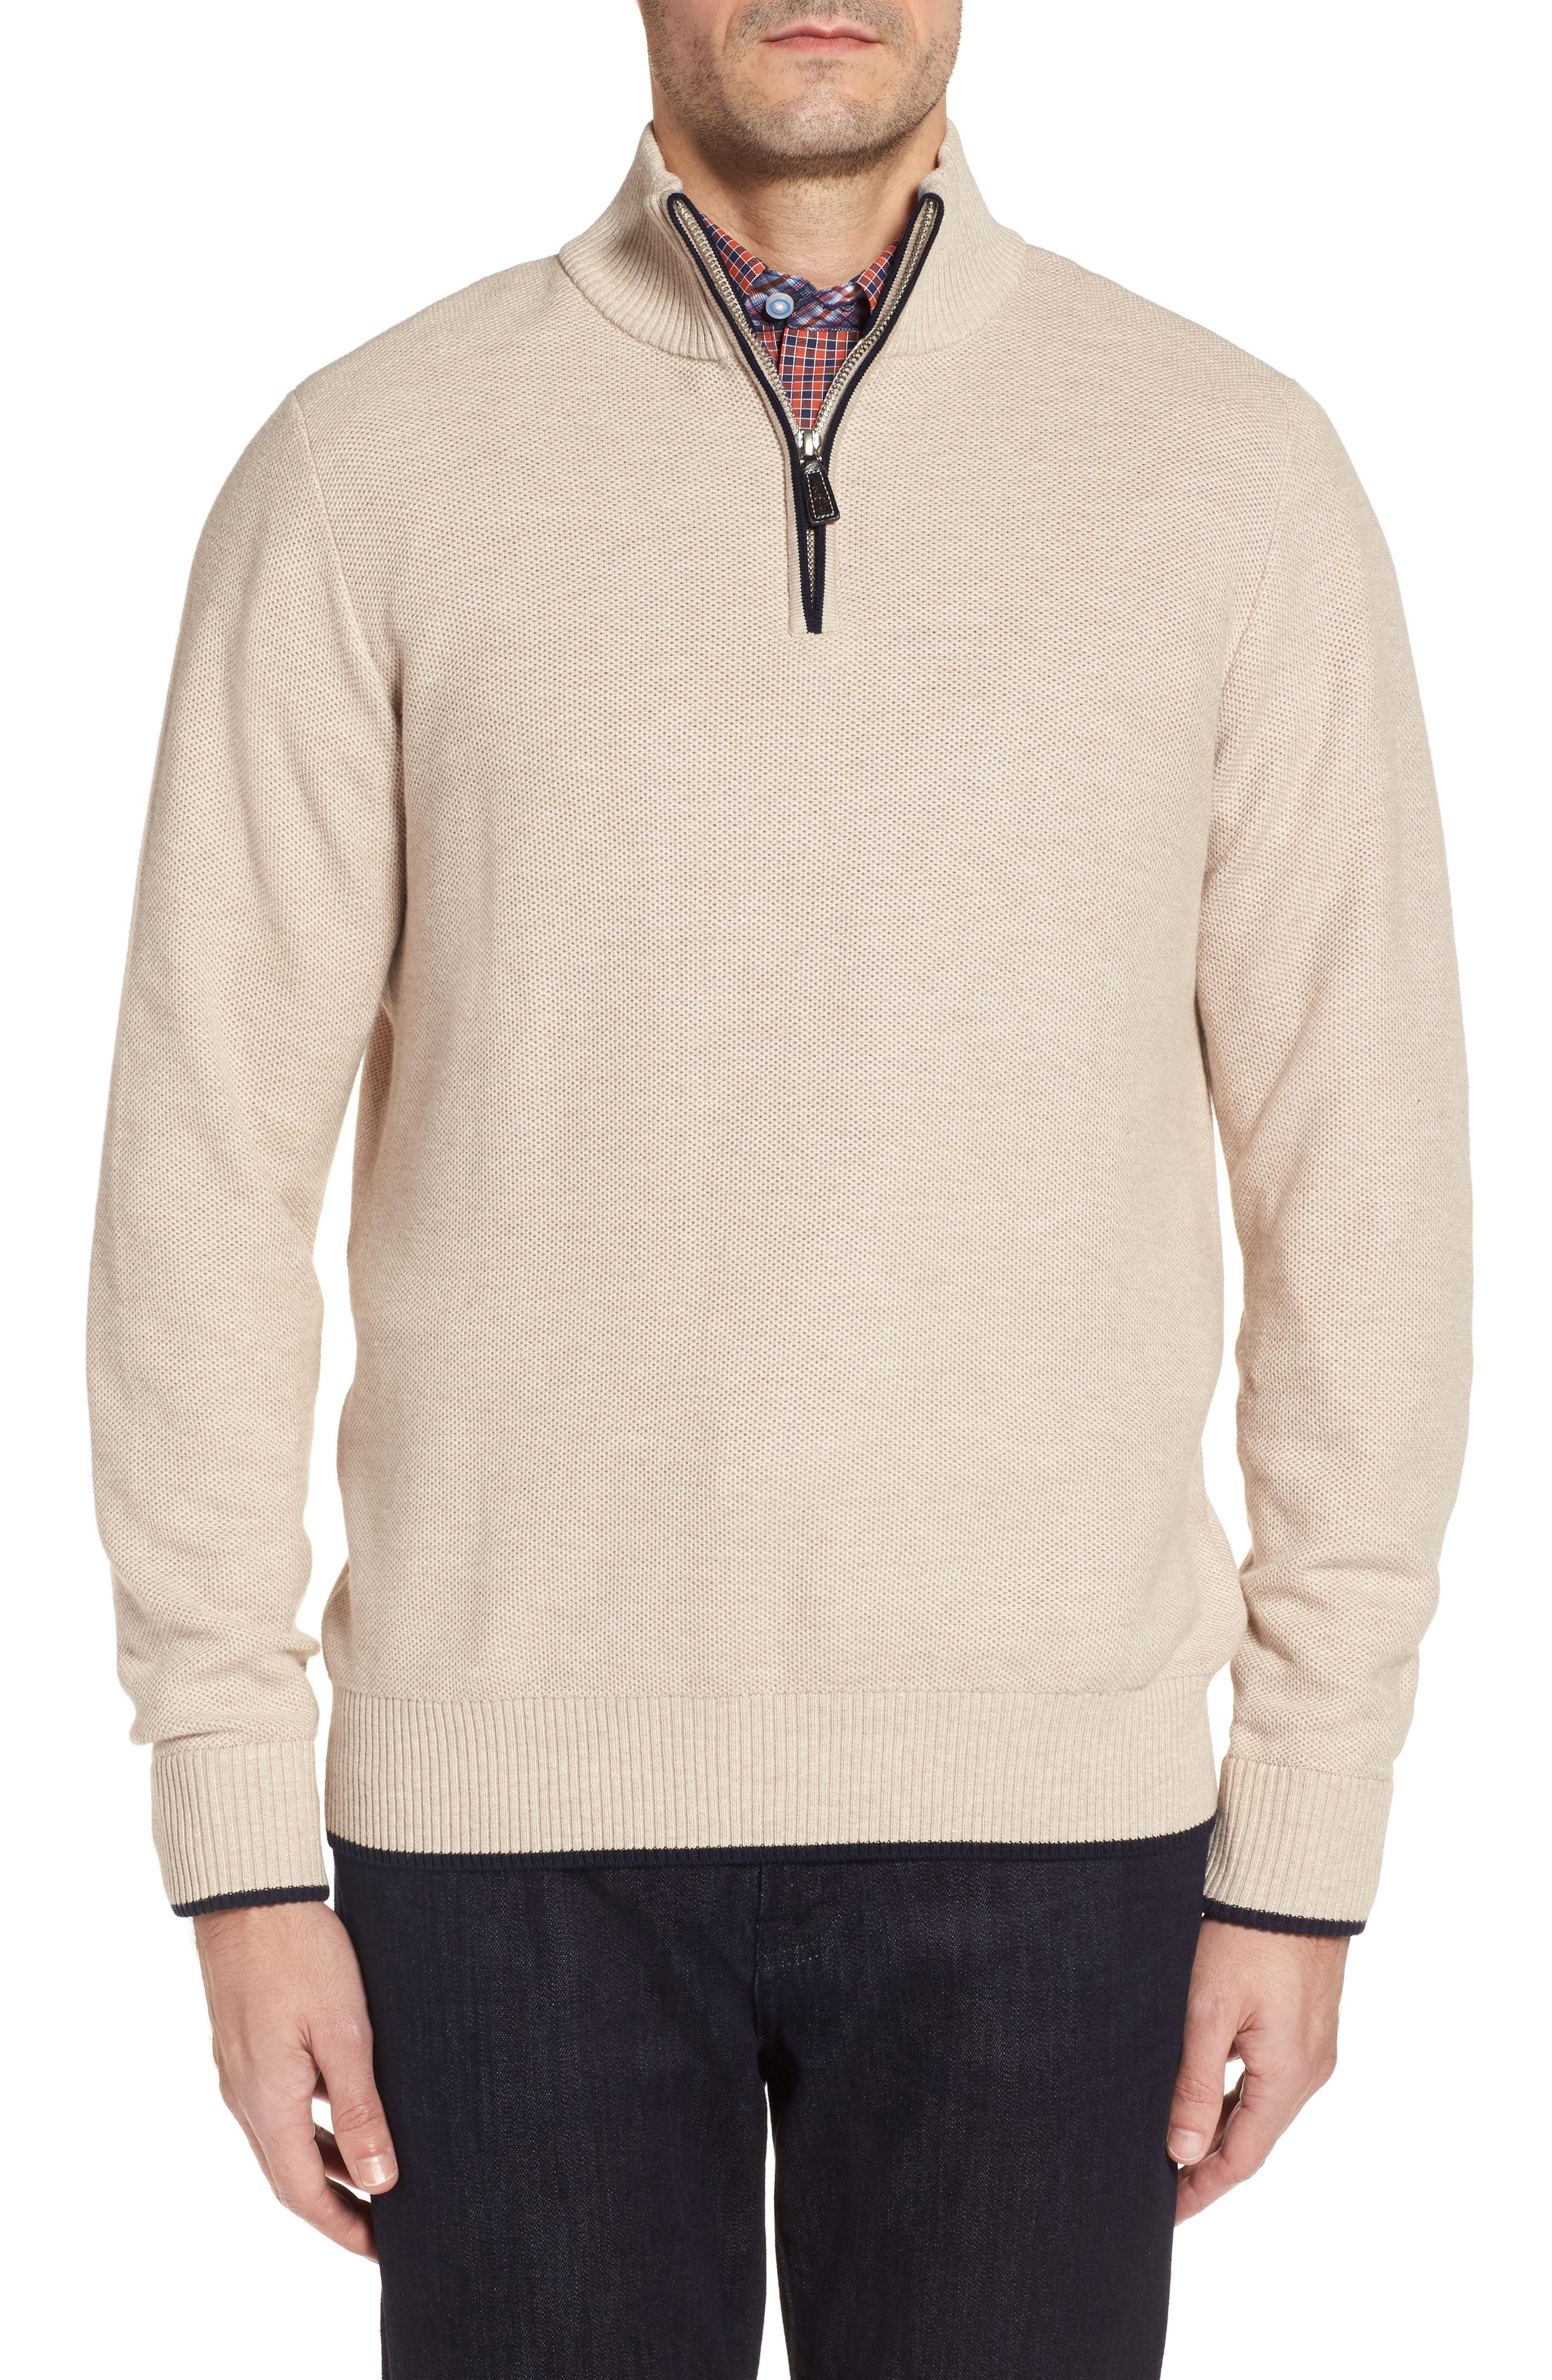 Sikes Tipped Quarter Zip Sweater,                         Main,                         color,